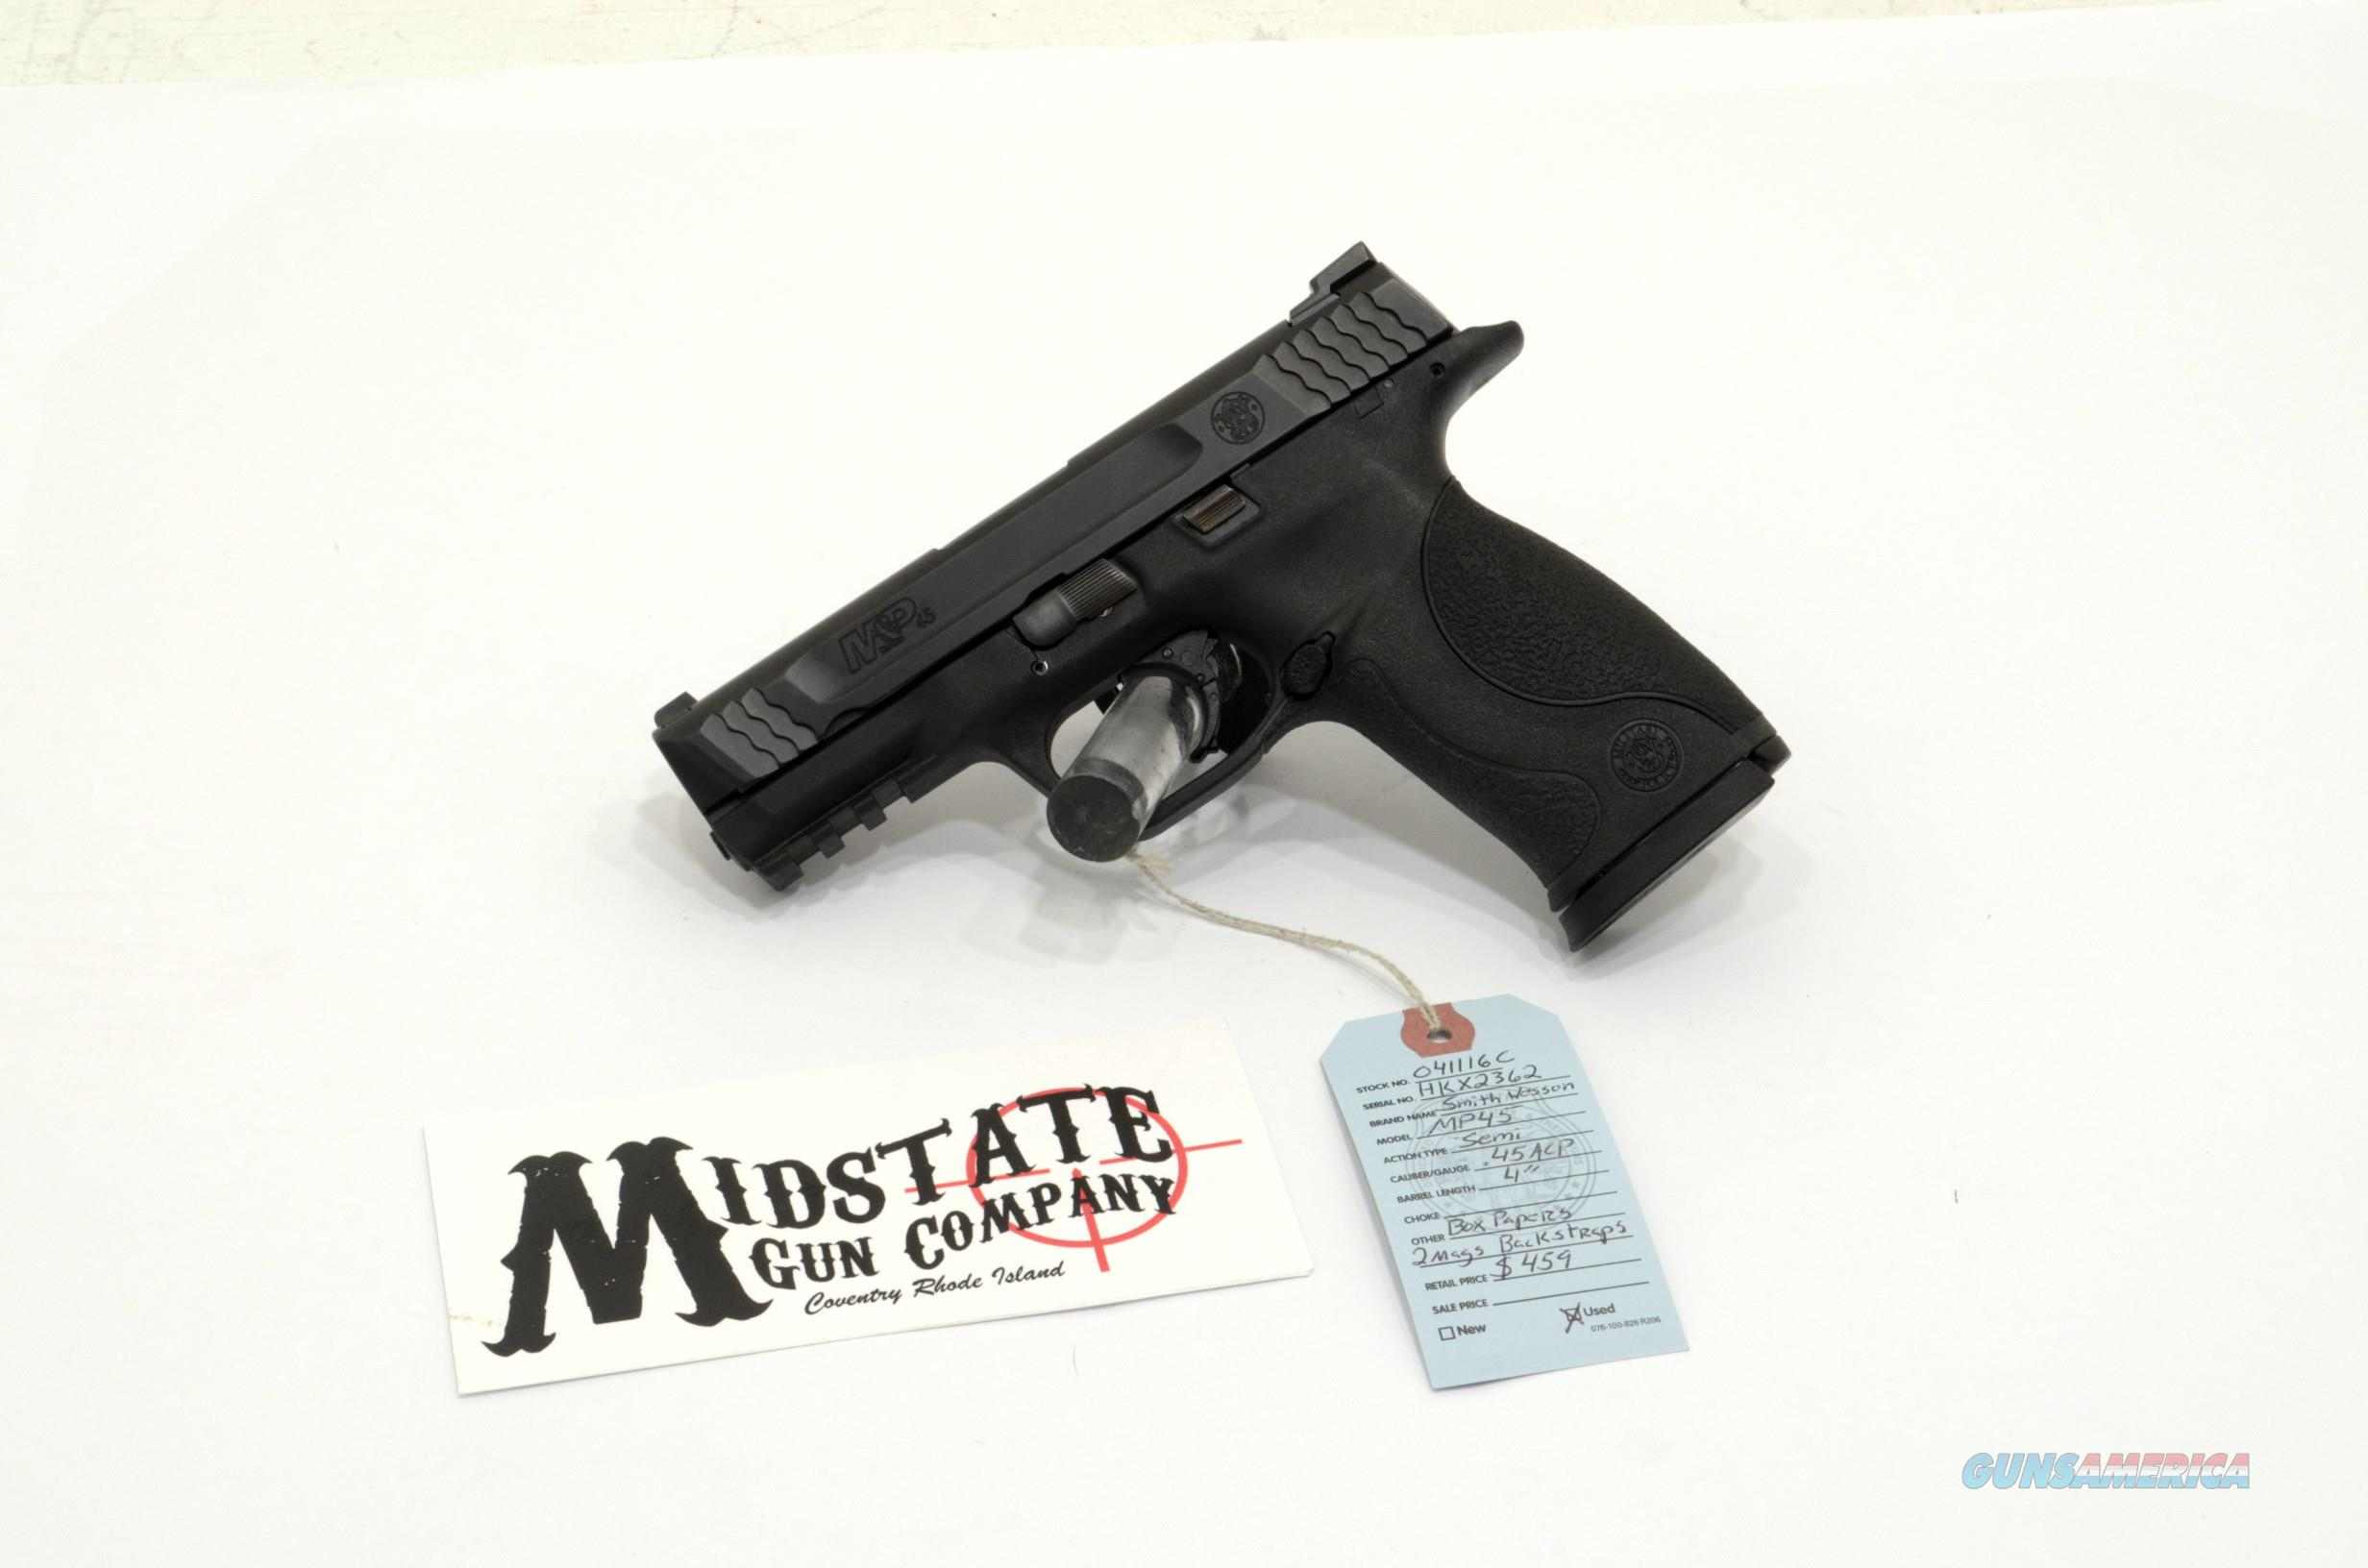 Smith & Wesson M&P45 .45acp pistol  Guns > Pistols > Smith & Wesson Pistols - Autos > Polymer Frame